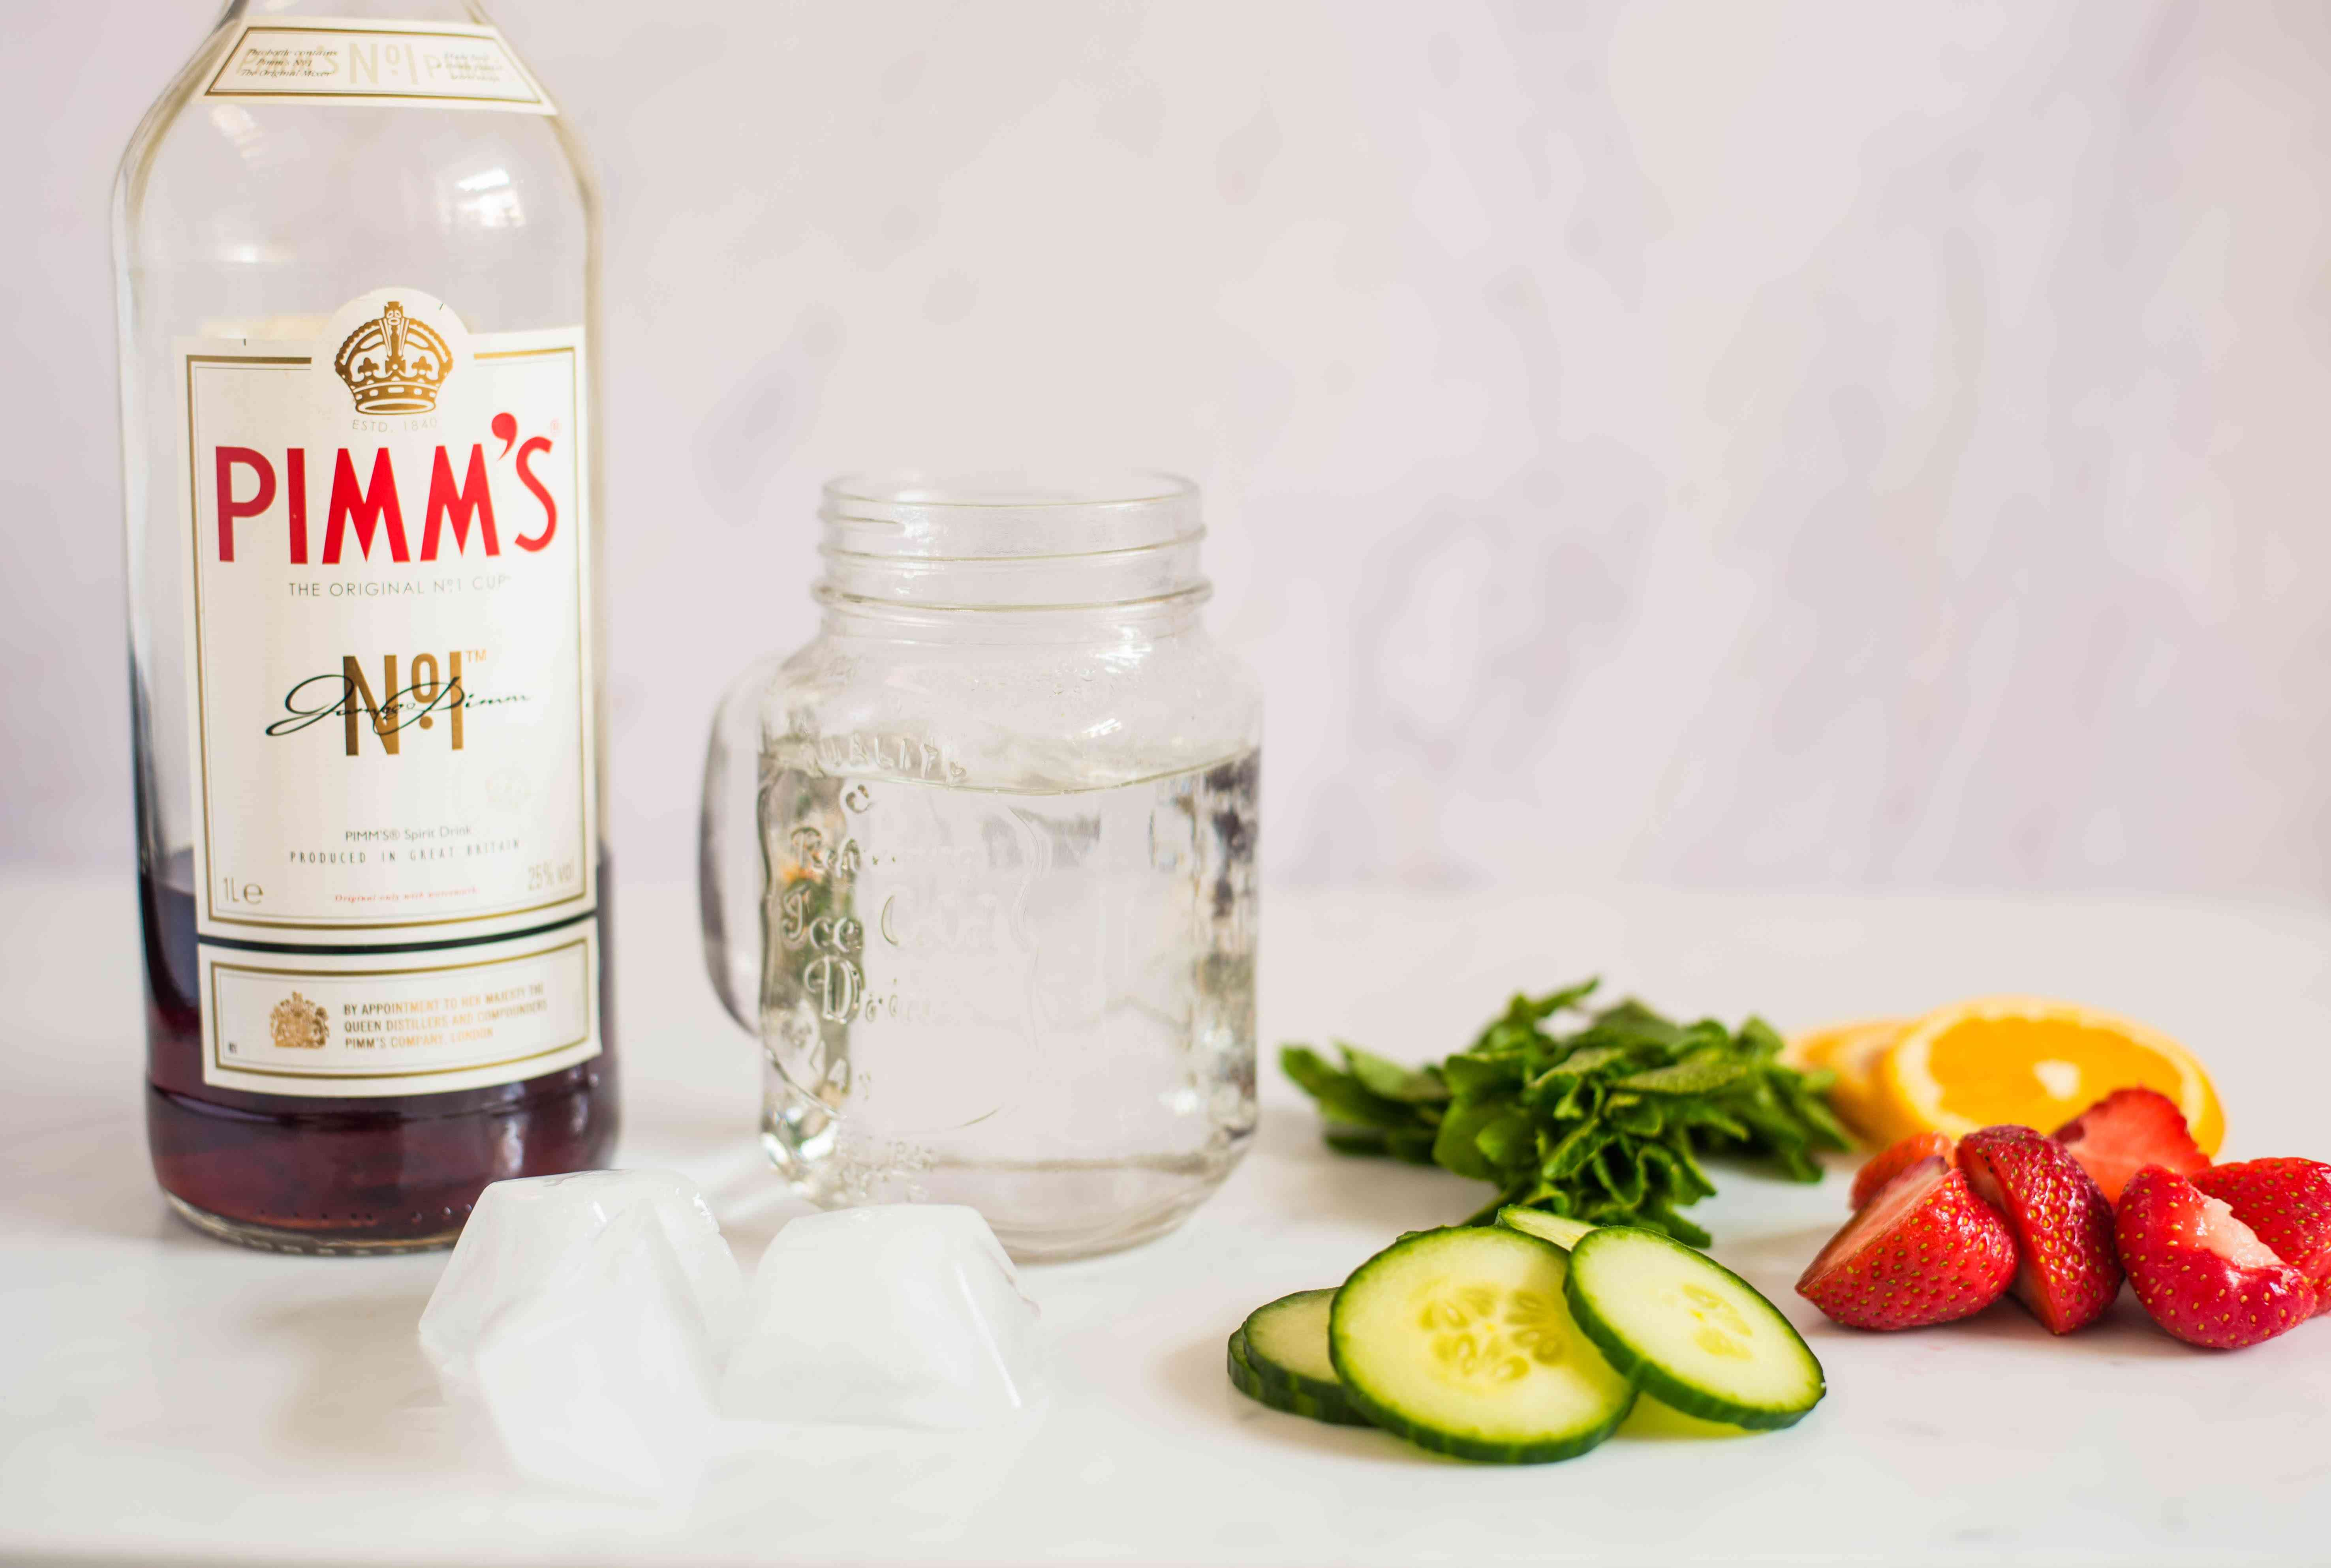 Ingredients for making Pimm's and lemonade